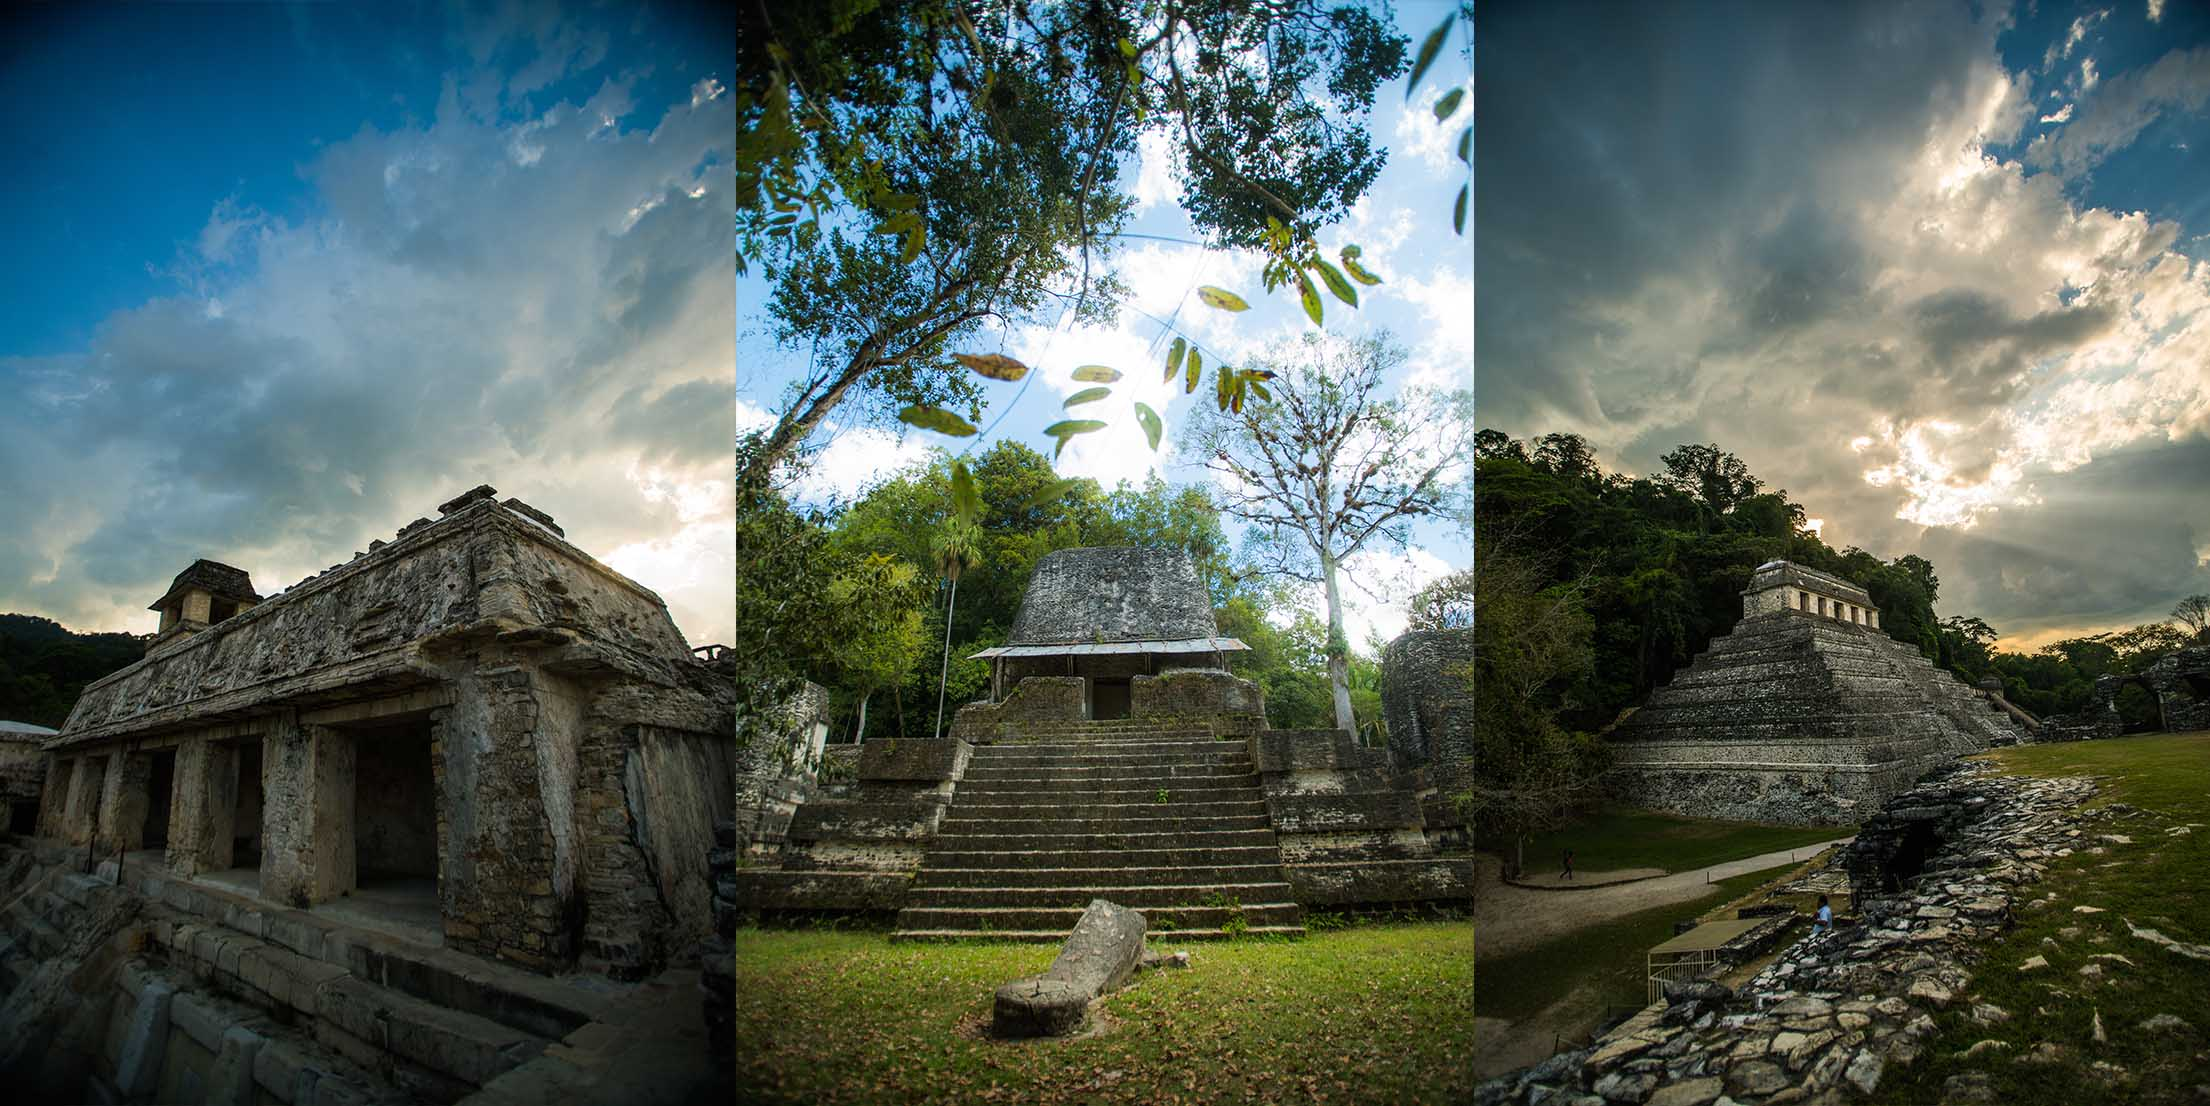 Left to right: Palenque, Chiapas. Tikal, Guatemala. Palenque, Chiapas.